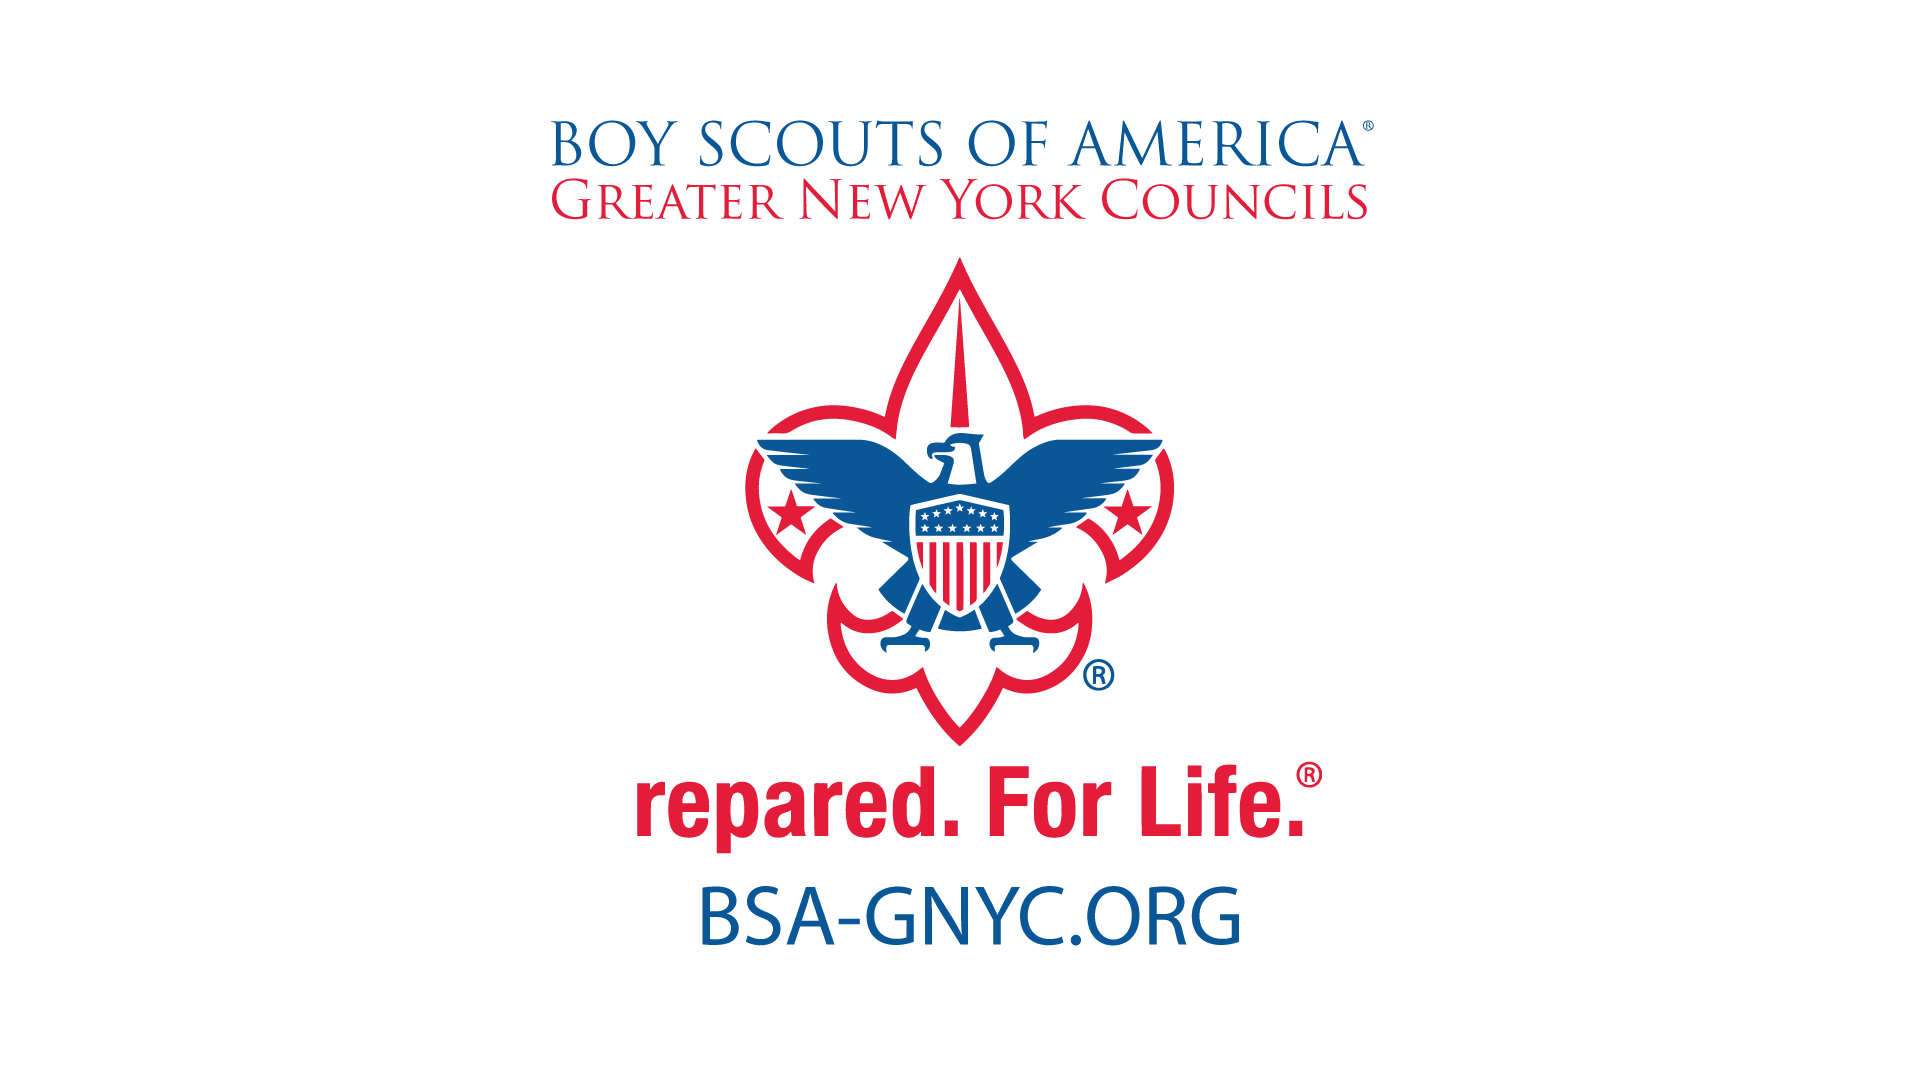 The Greater New York Councils, Boy Scouts of America Ring